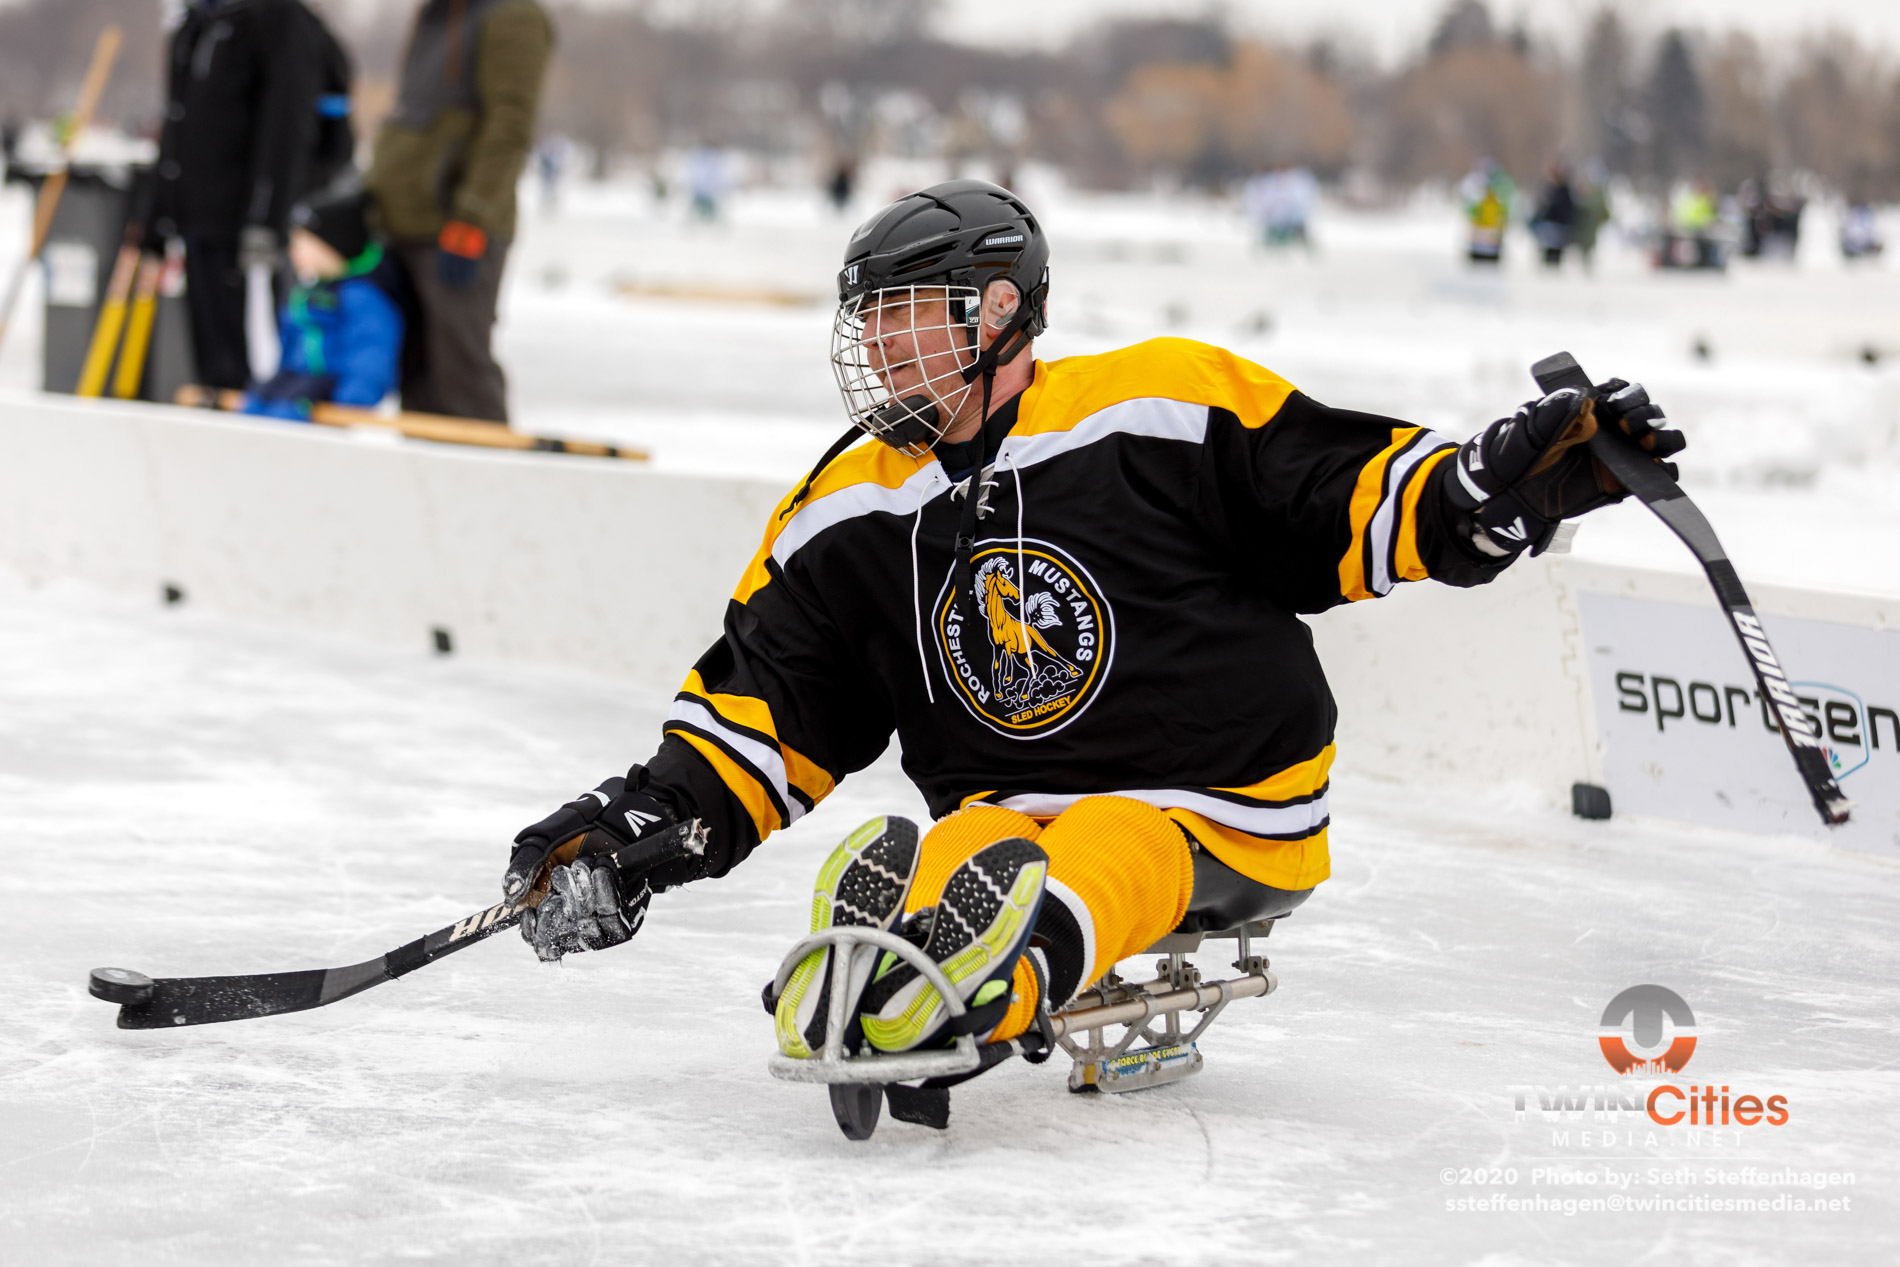 January 26, 2020 - Minneapolis, Minnesota, United States - Rochester Mustangs Gold take on Rochester Mustangs Black in the sled hockey championship game during the U.S. Pond Hockey Championships on Lake Nokomis.   (Photo by Seth Steffenhagen/Steffenhagen Photography)